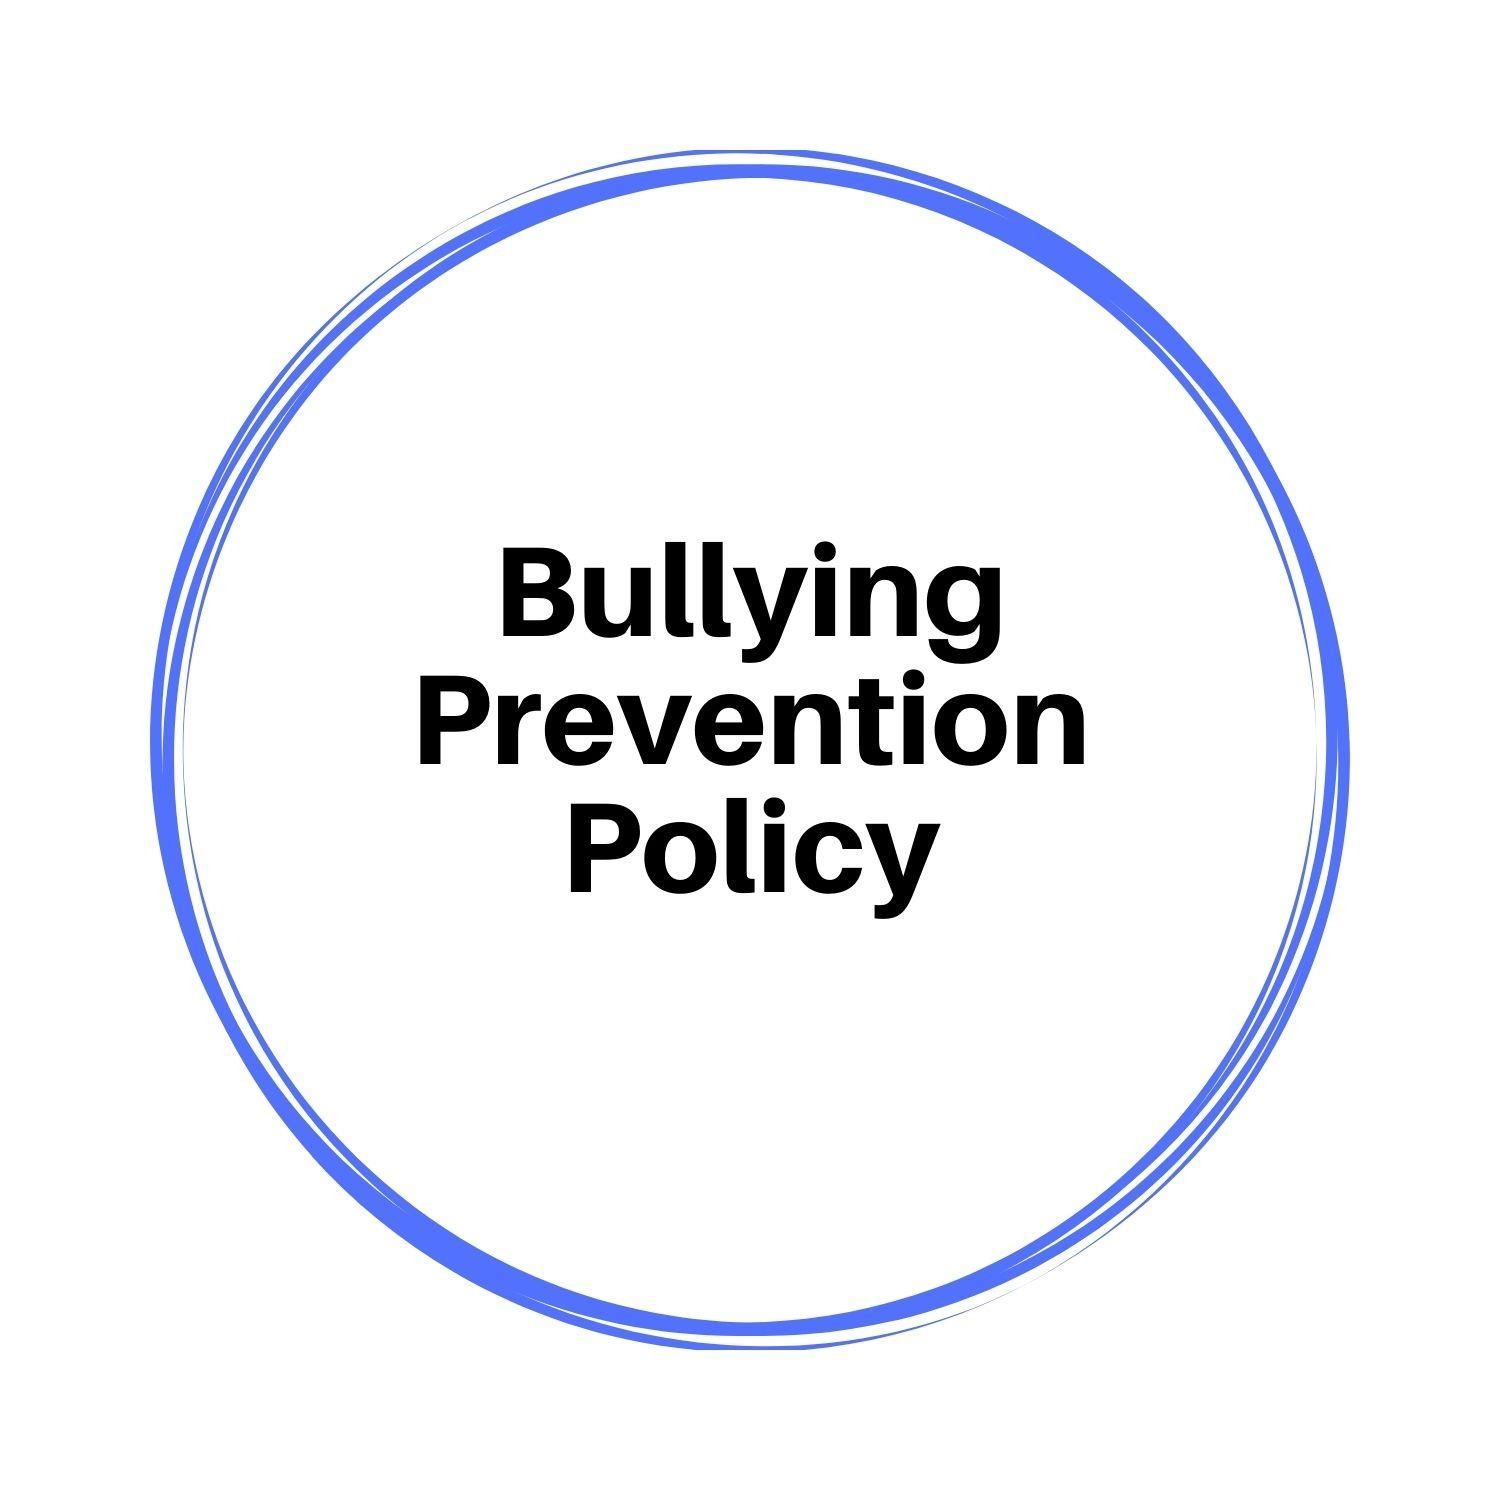 Bullying Prevention Policy